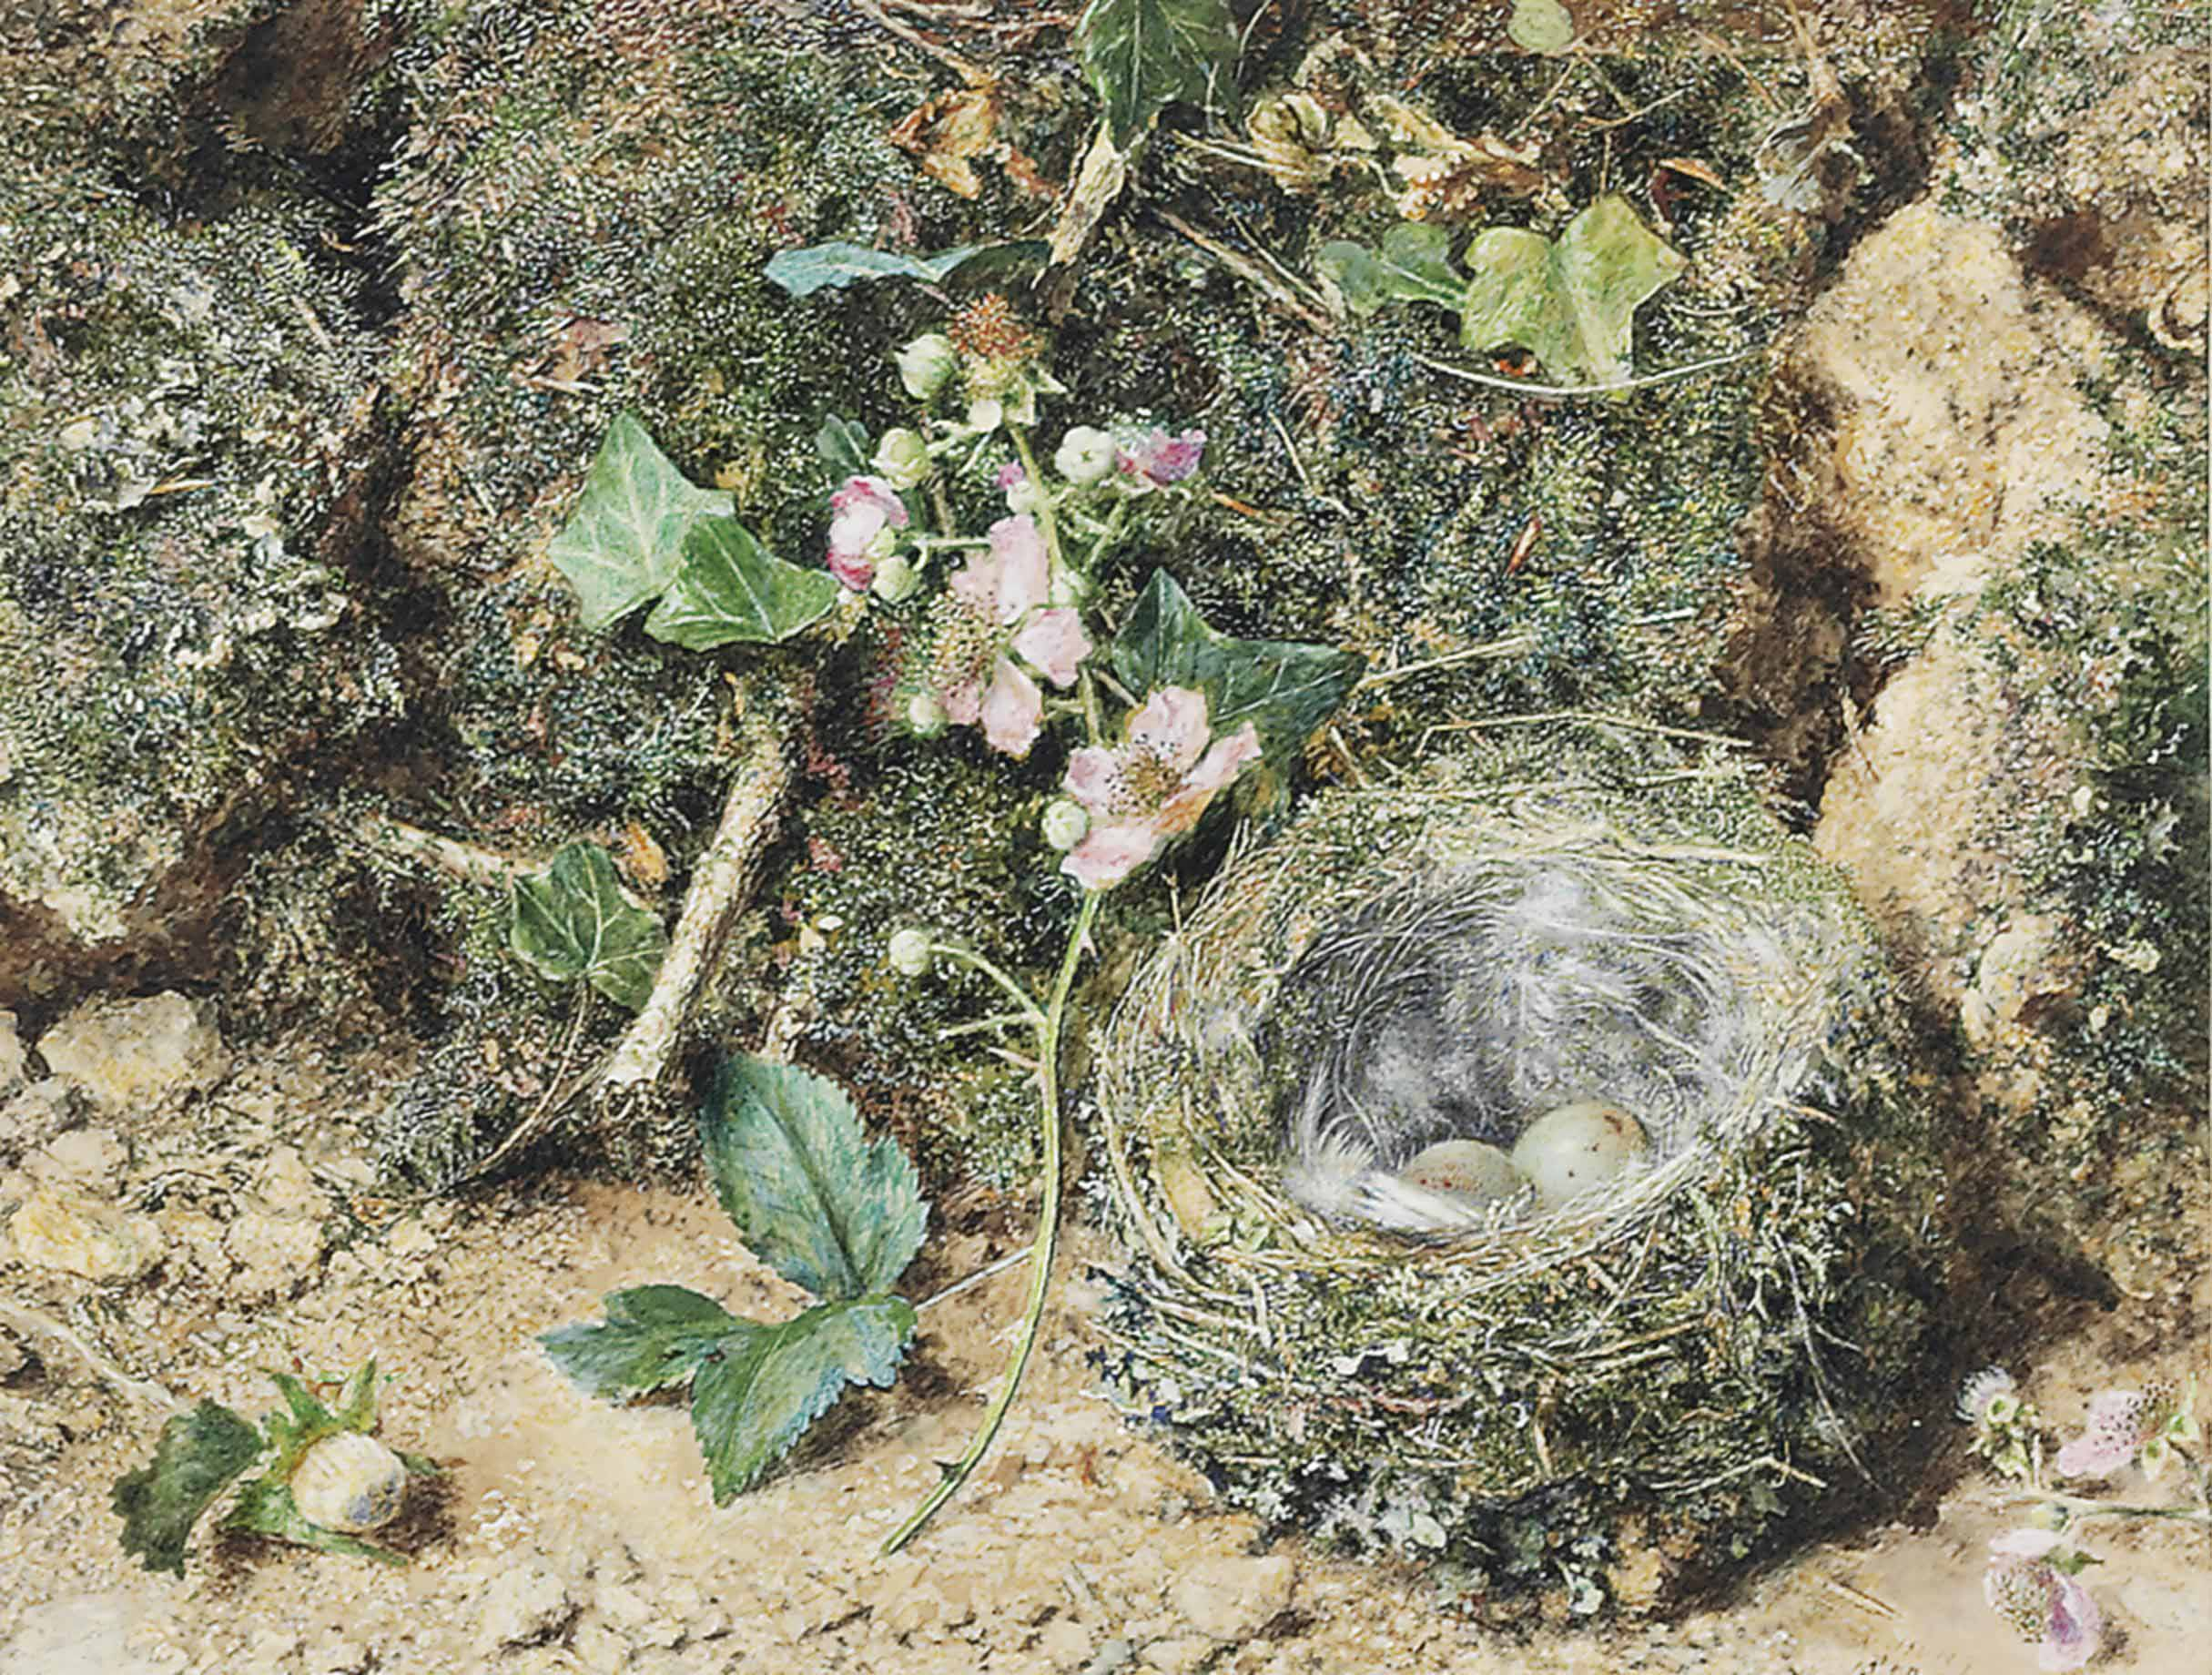 Bird's nest and roses on a mossy bank